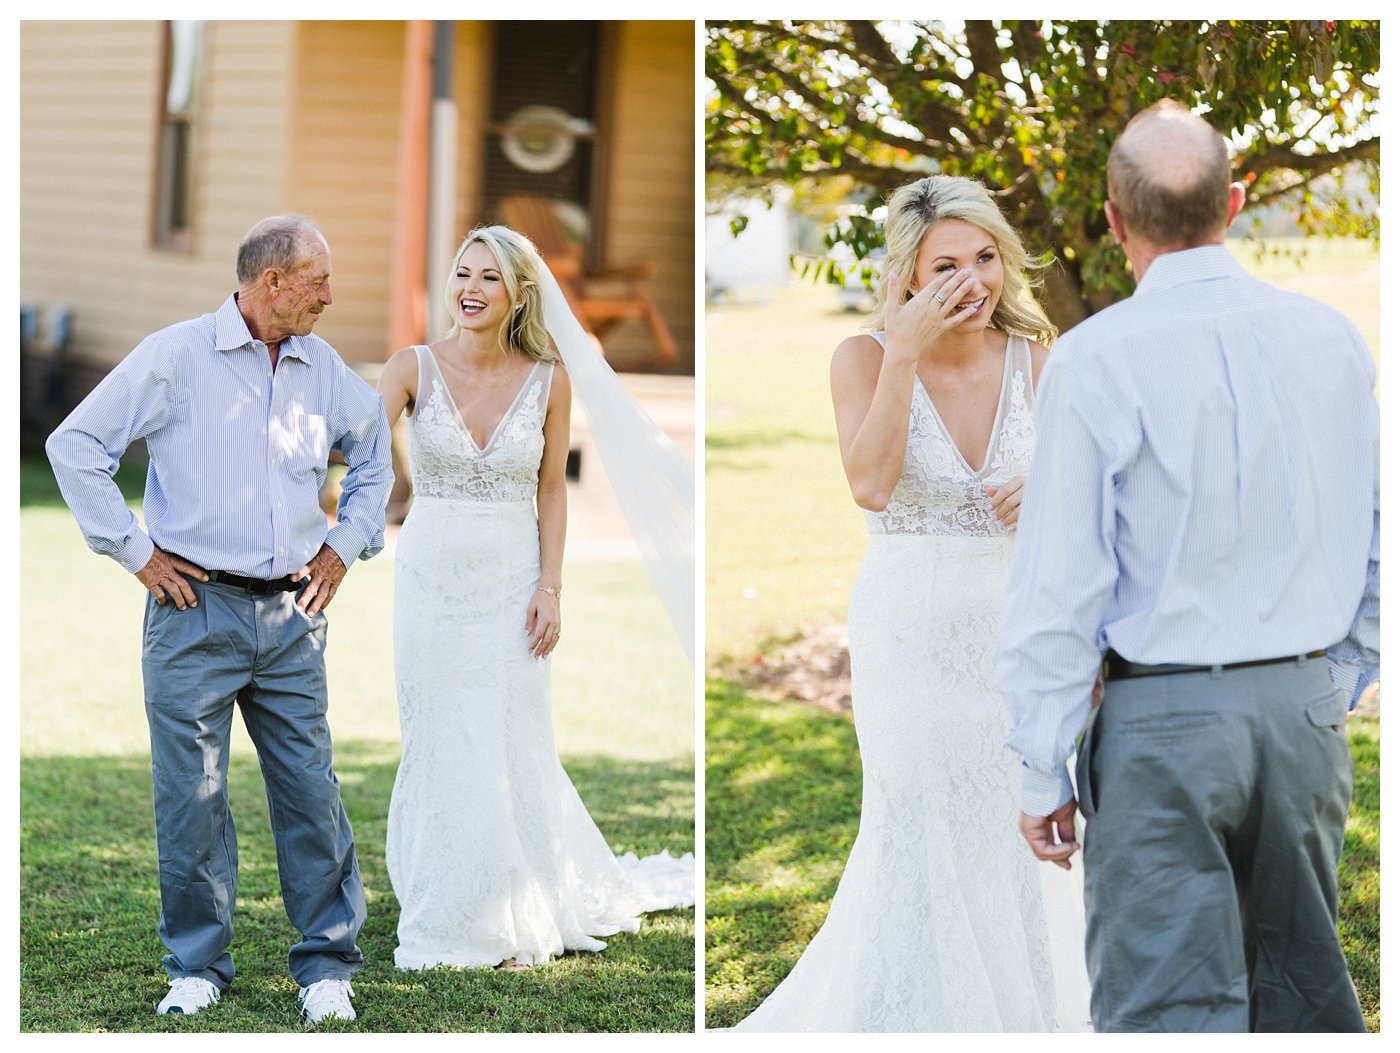 Double C Ranch Wedding Photography by Amanda and Grady